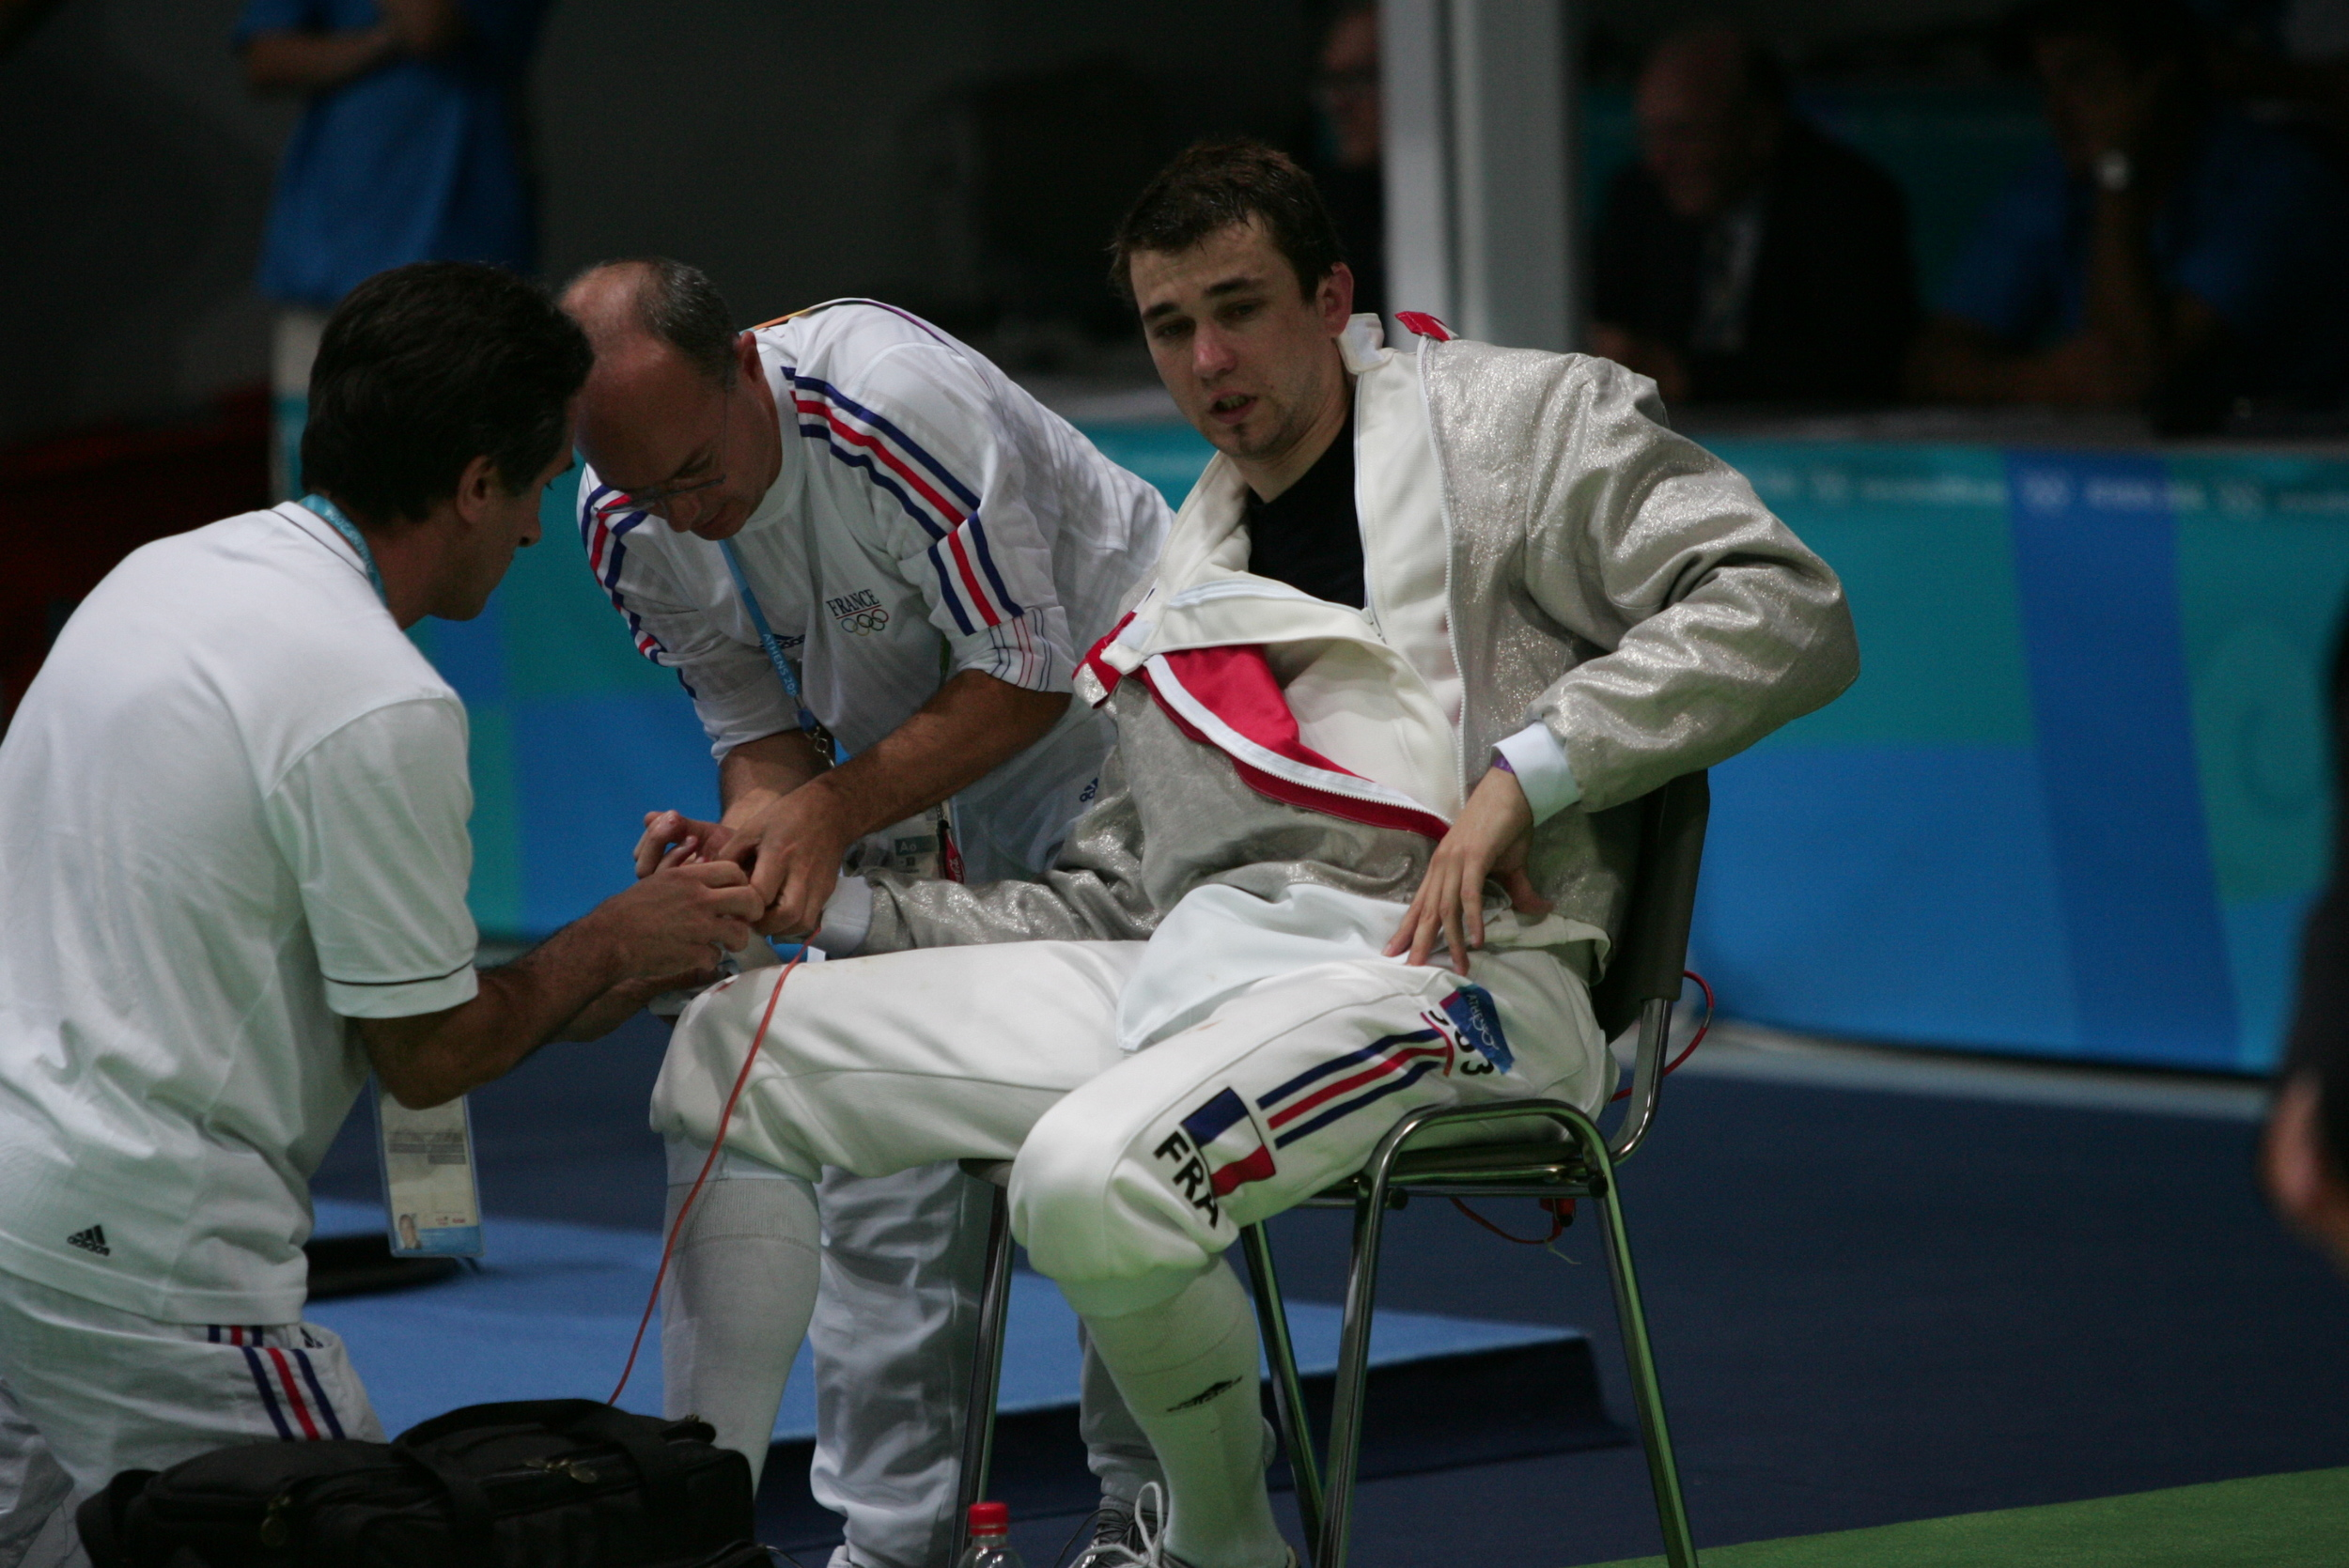 Damien Touya's hand being bandaged in Men's Sabre Semi-Final - USA France - Athens Olympics